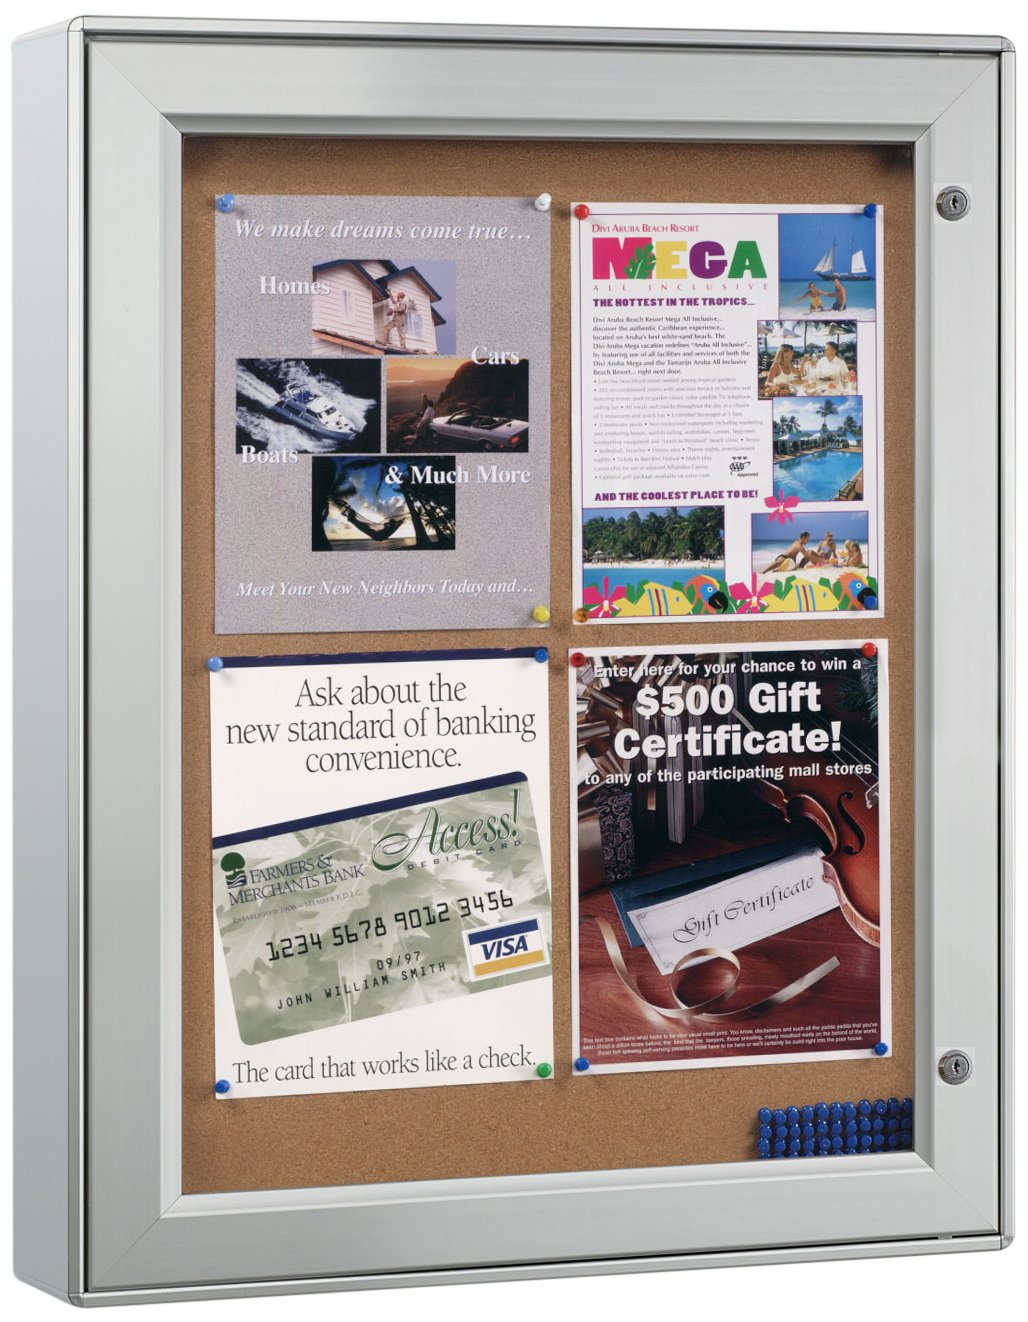 Displays2go Wall-Mounted Enclosed Bulletin Board, 23-1/4 x 29-3/4 Inches, Aluminum Frame, Weather Resistant, Swing-Open Locking Door for Indoor or Outdoor Use (ODNBCB4A4) George Patton Associates